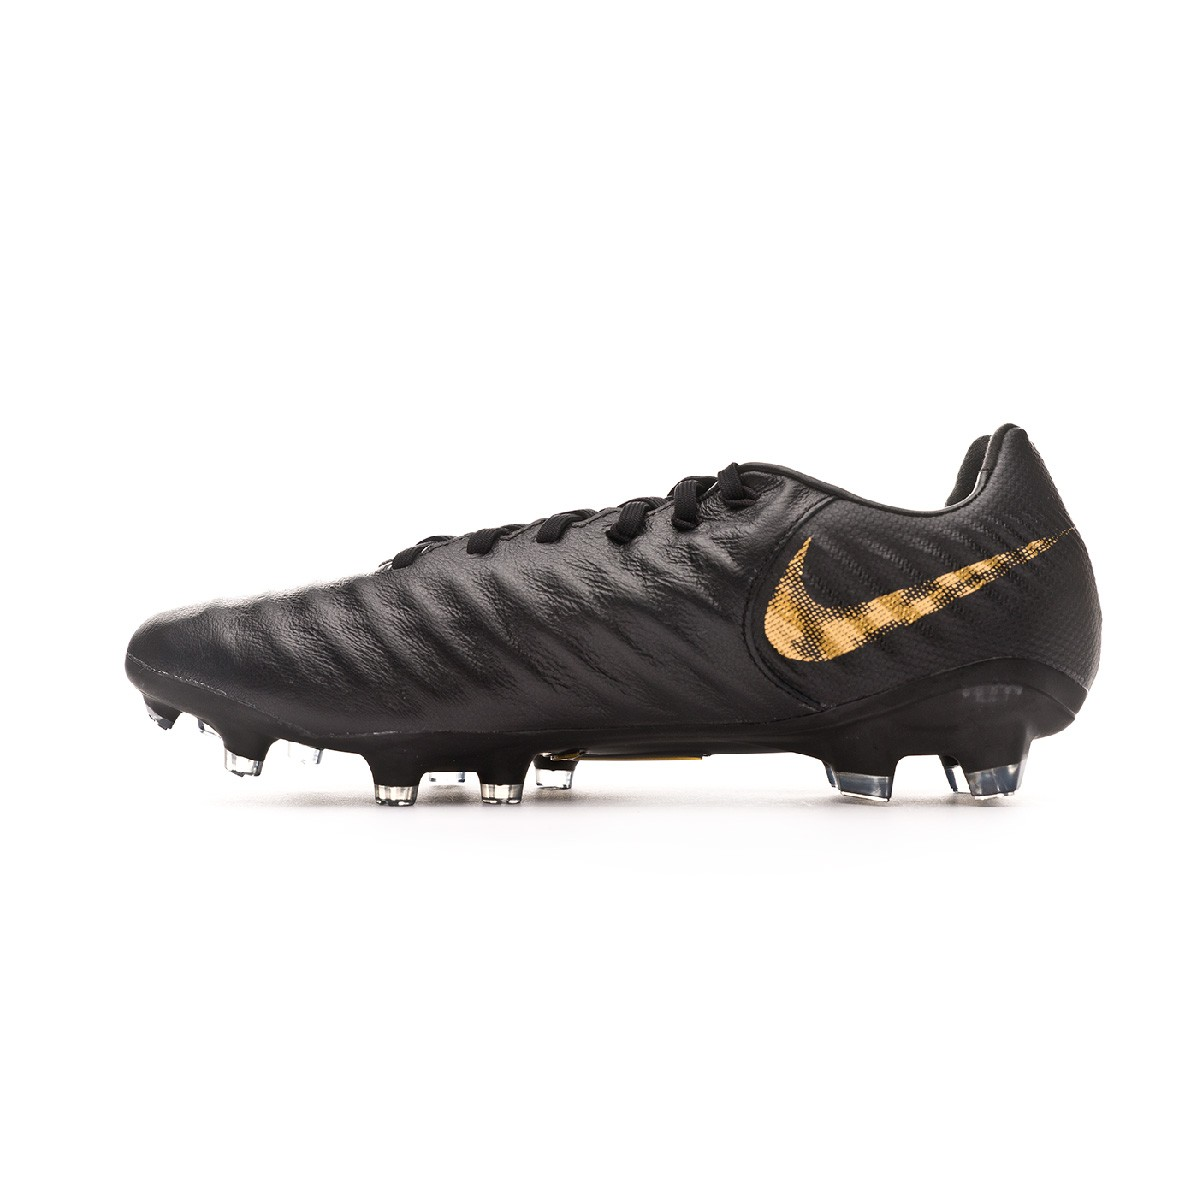 purchase cheap 9fd90 c30d1 Bota Tiempo Legend VI Pro FG Black-Metallic vivid gold